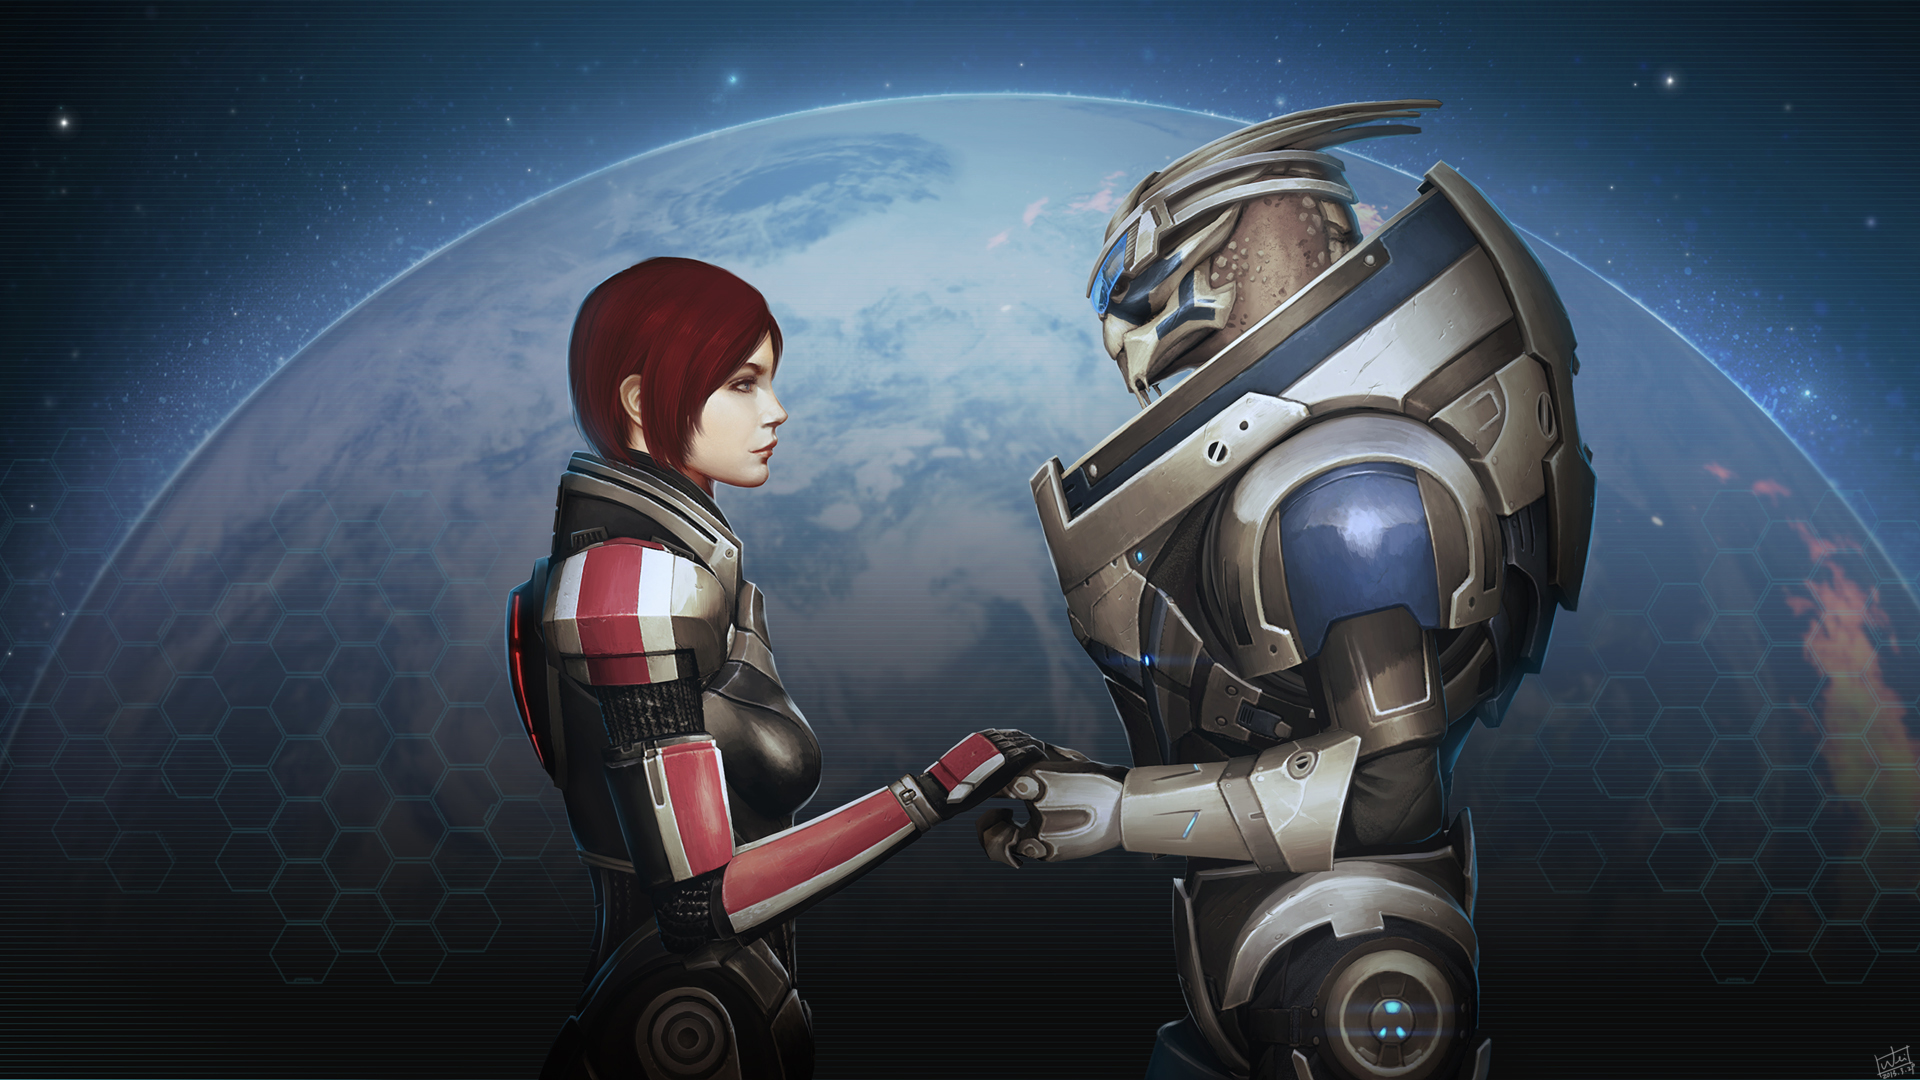 Why Women Want To Have Sex With Garrus